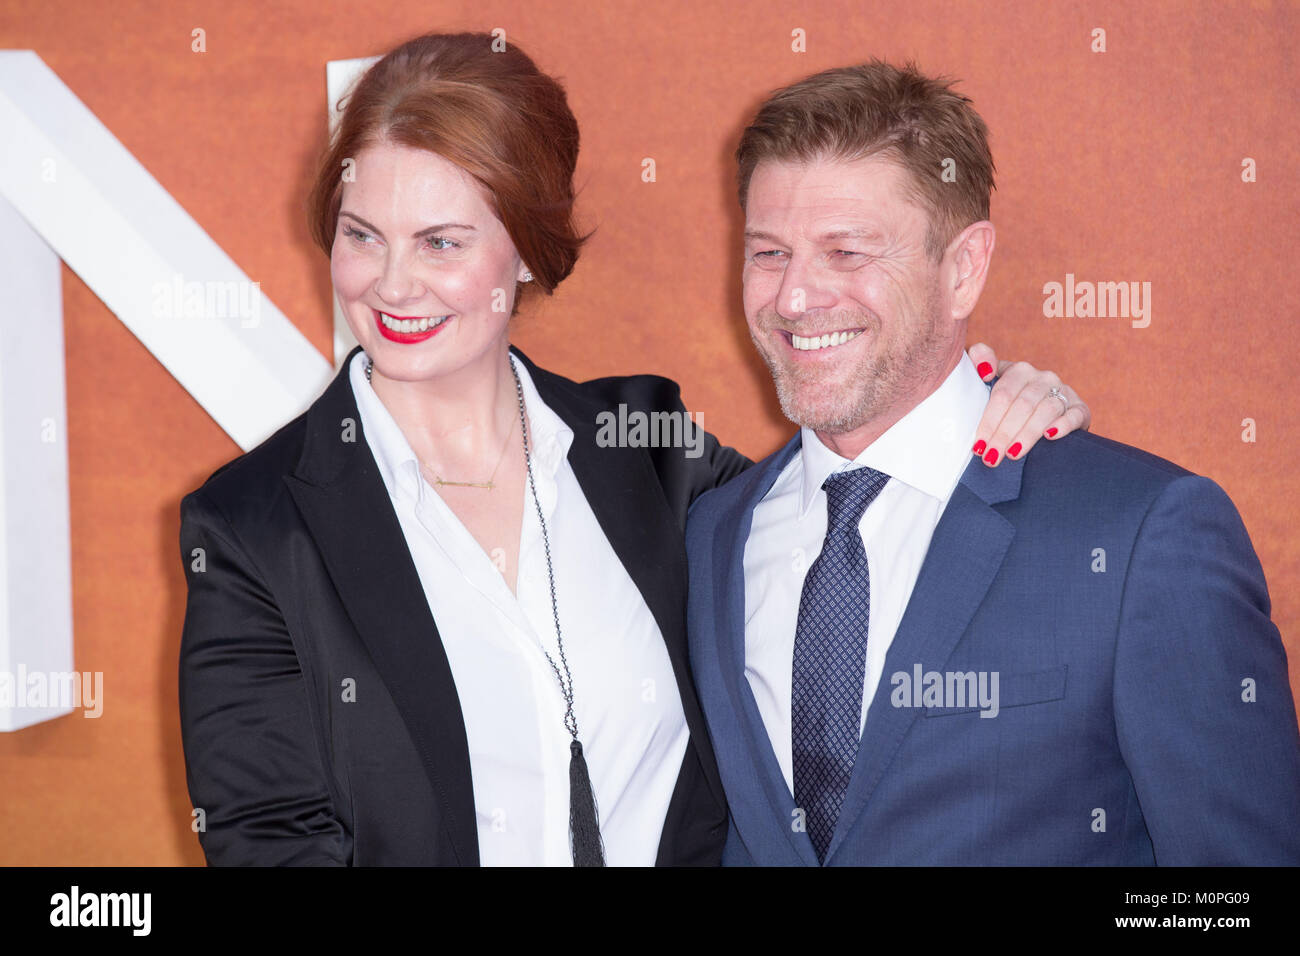 London, UK,  24 September 2015, Sean Bean, European Premiere of 'The Martian' at the Odeon Leicester Square. - Stock Image